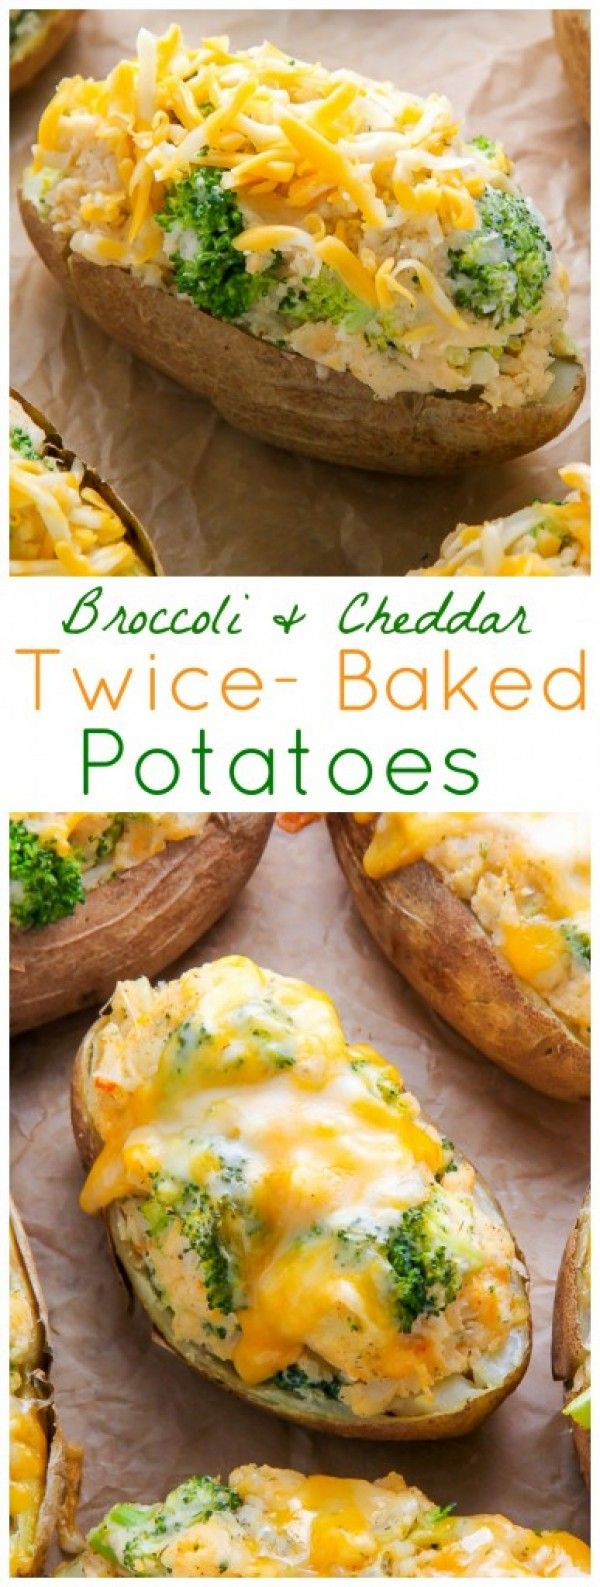 Get the recipe ♥ Broccoli and Cheddar Twice-Baked Potatoes @recies_to_go